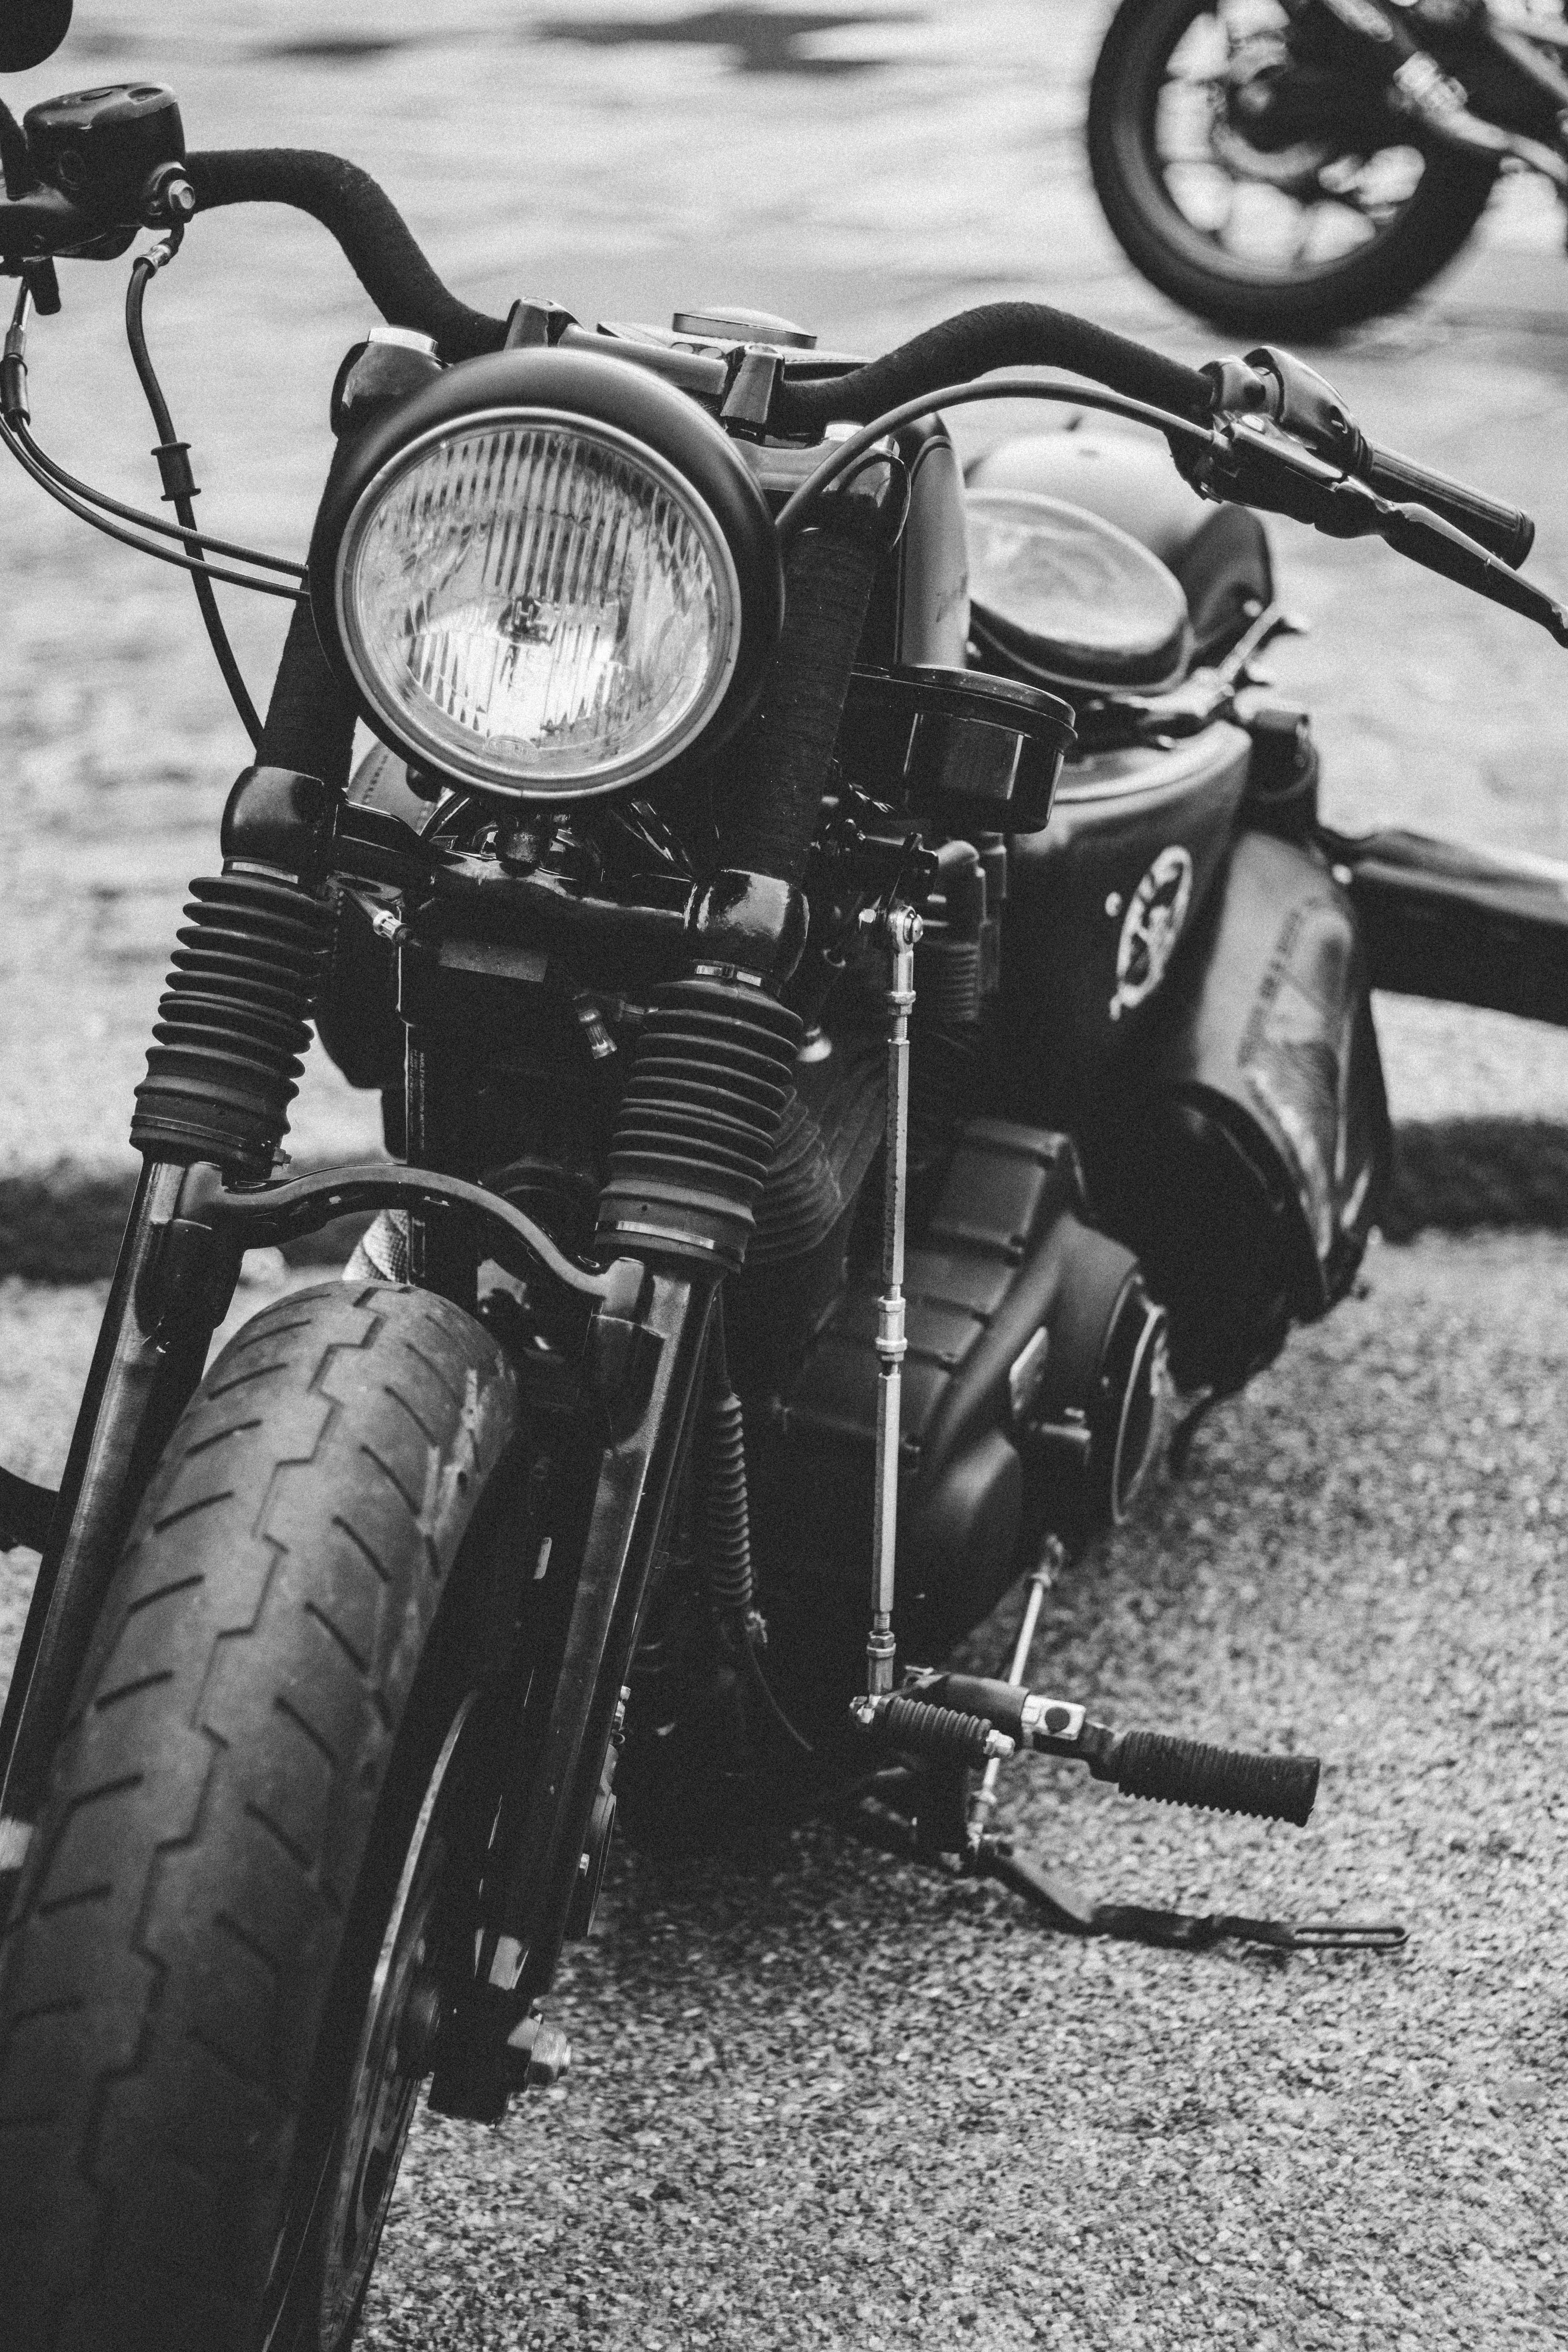 grayscale photo of cruiser motorcycle